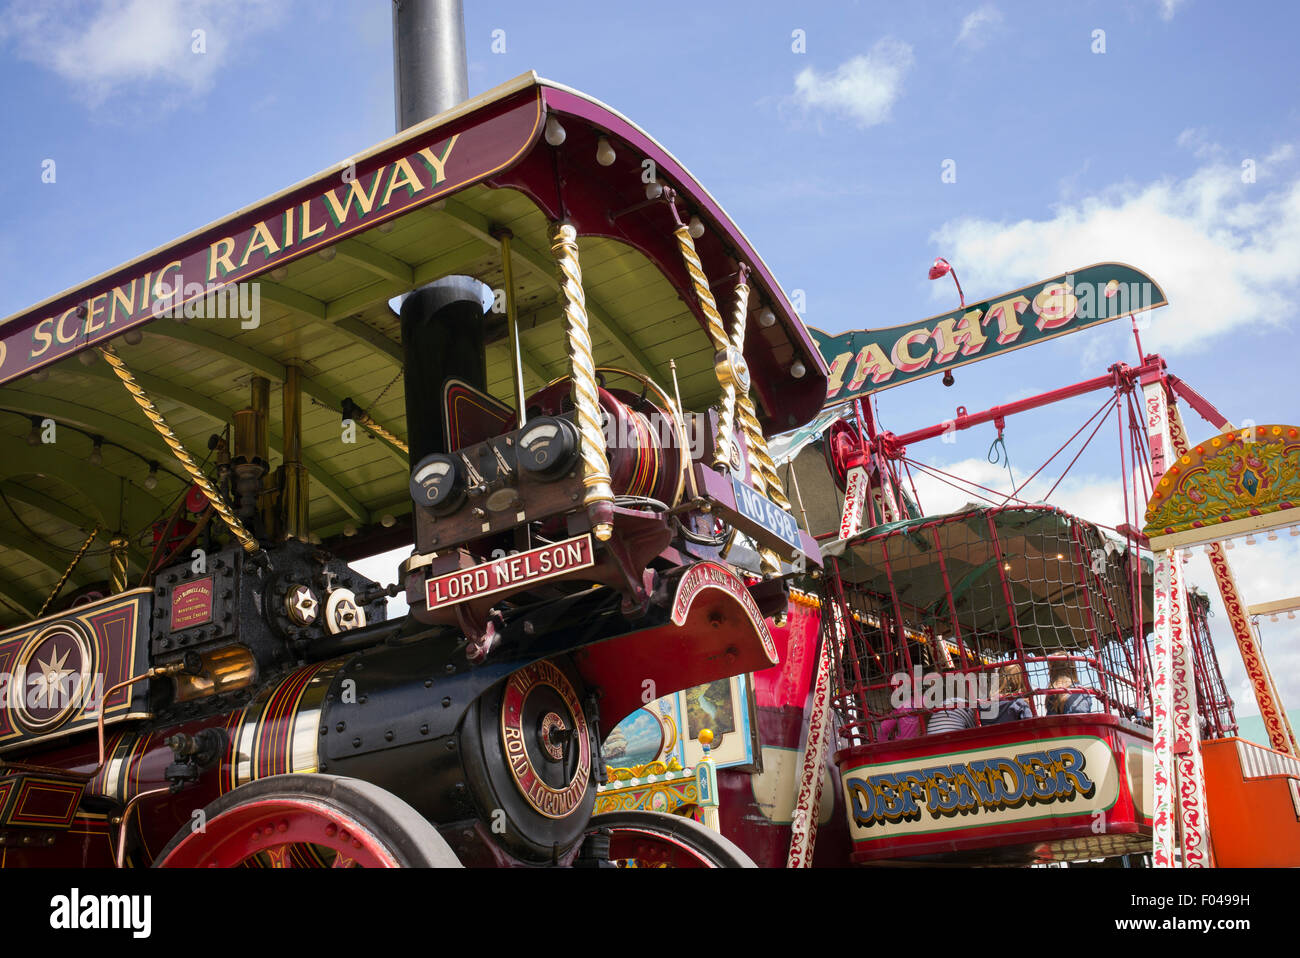 Showmans Traction Engine and fairground ride at a steam fair in England - Stock Image